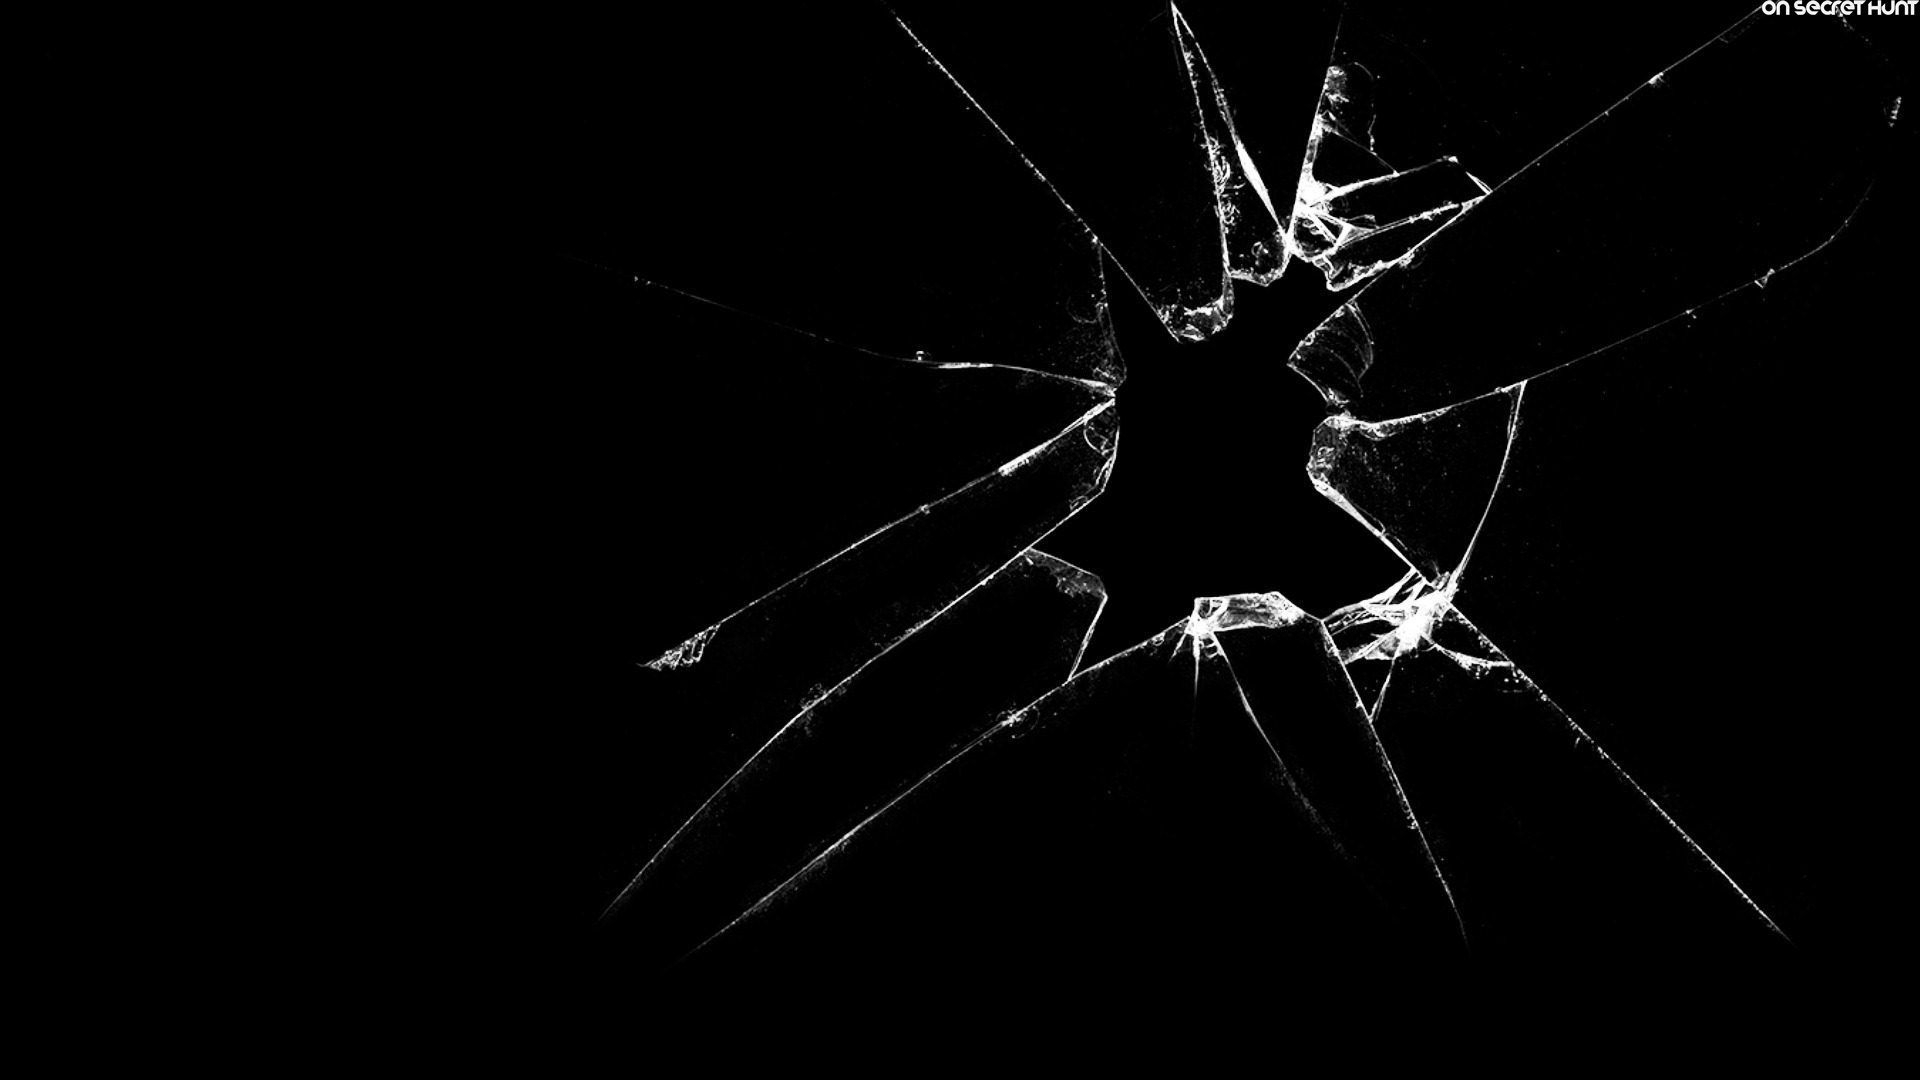 broken glass wallpapers hd | savage | pinterest | broken glass and